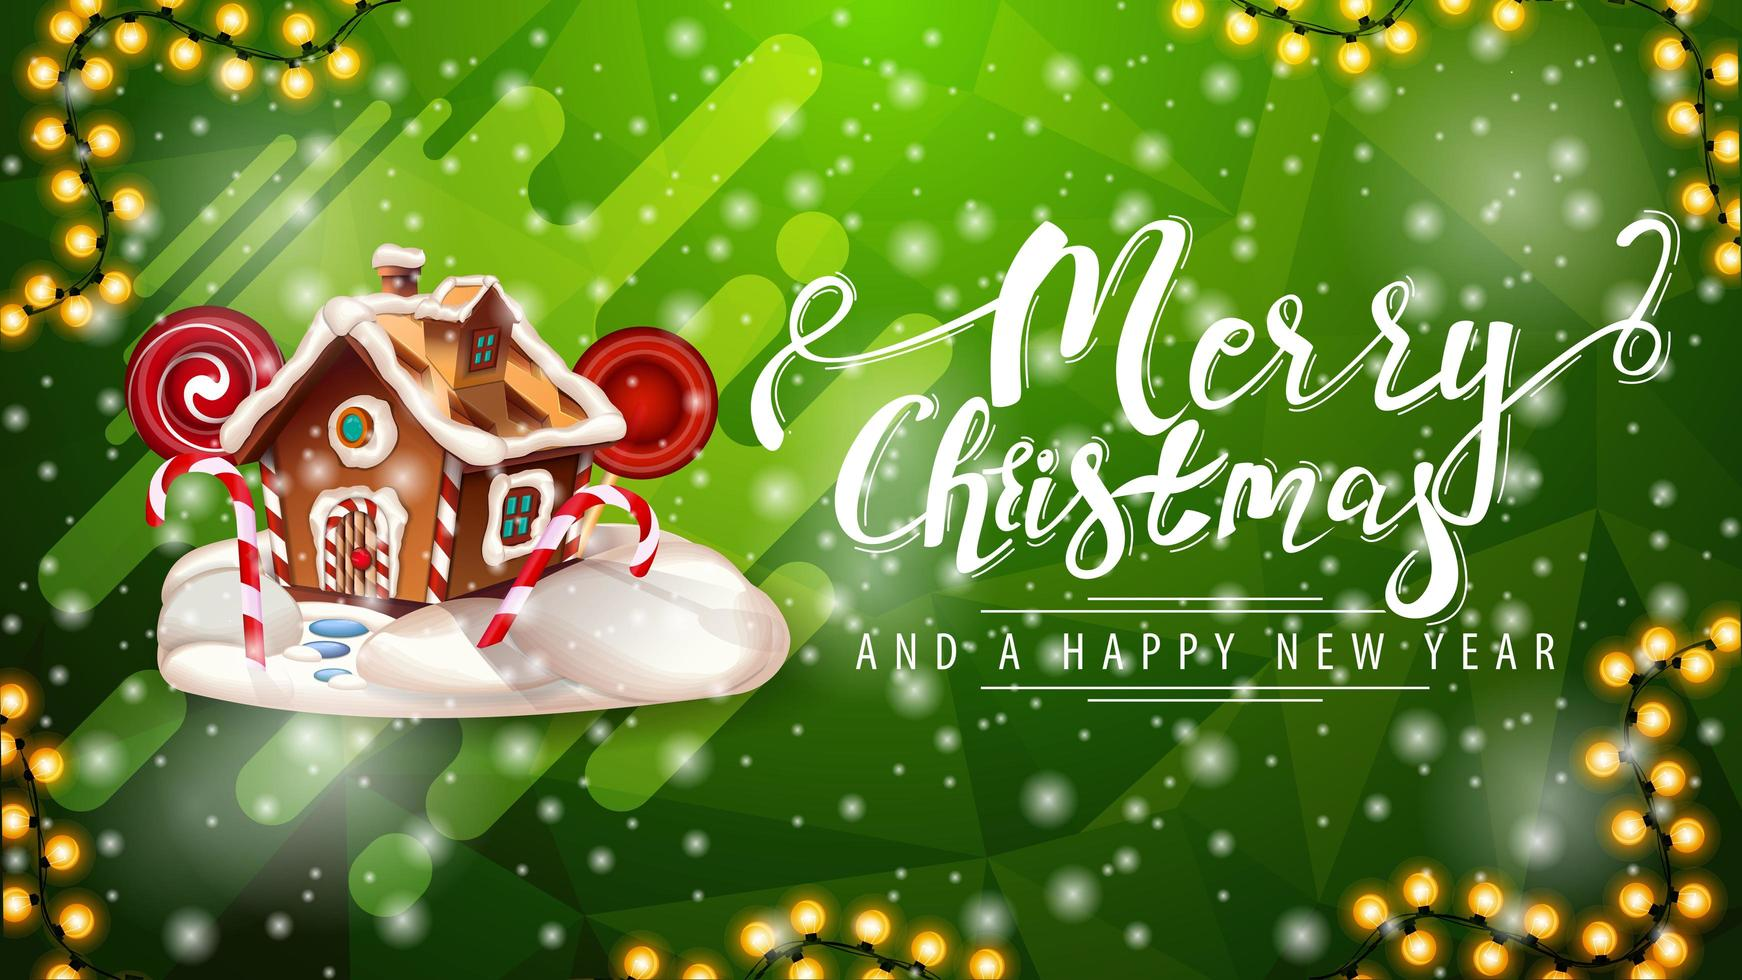 Merry Christmas and happy New Year, green postcard with garland, snowfall and Christmas gingerbread house vector